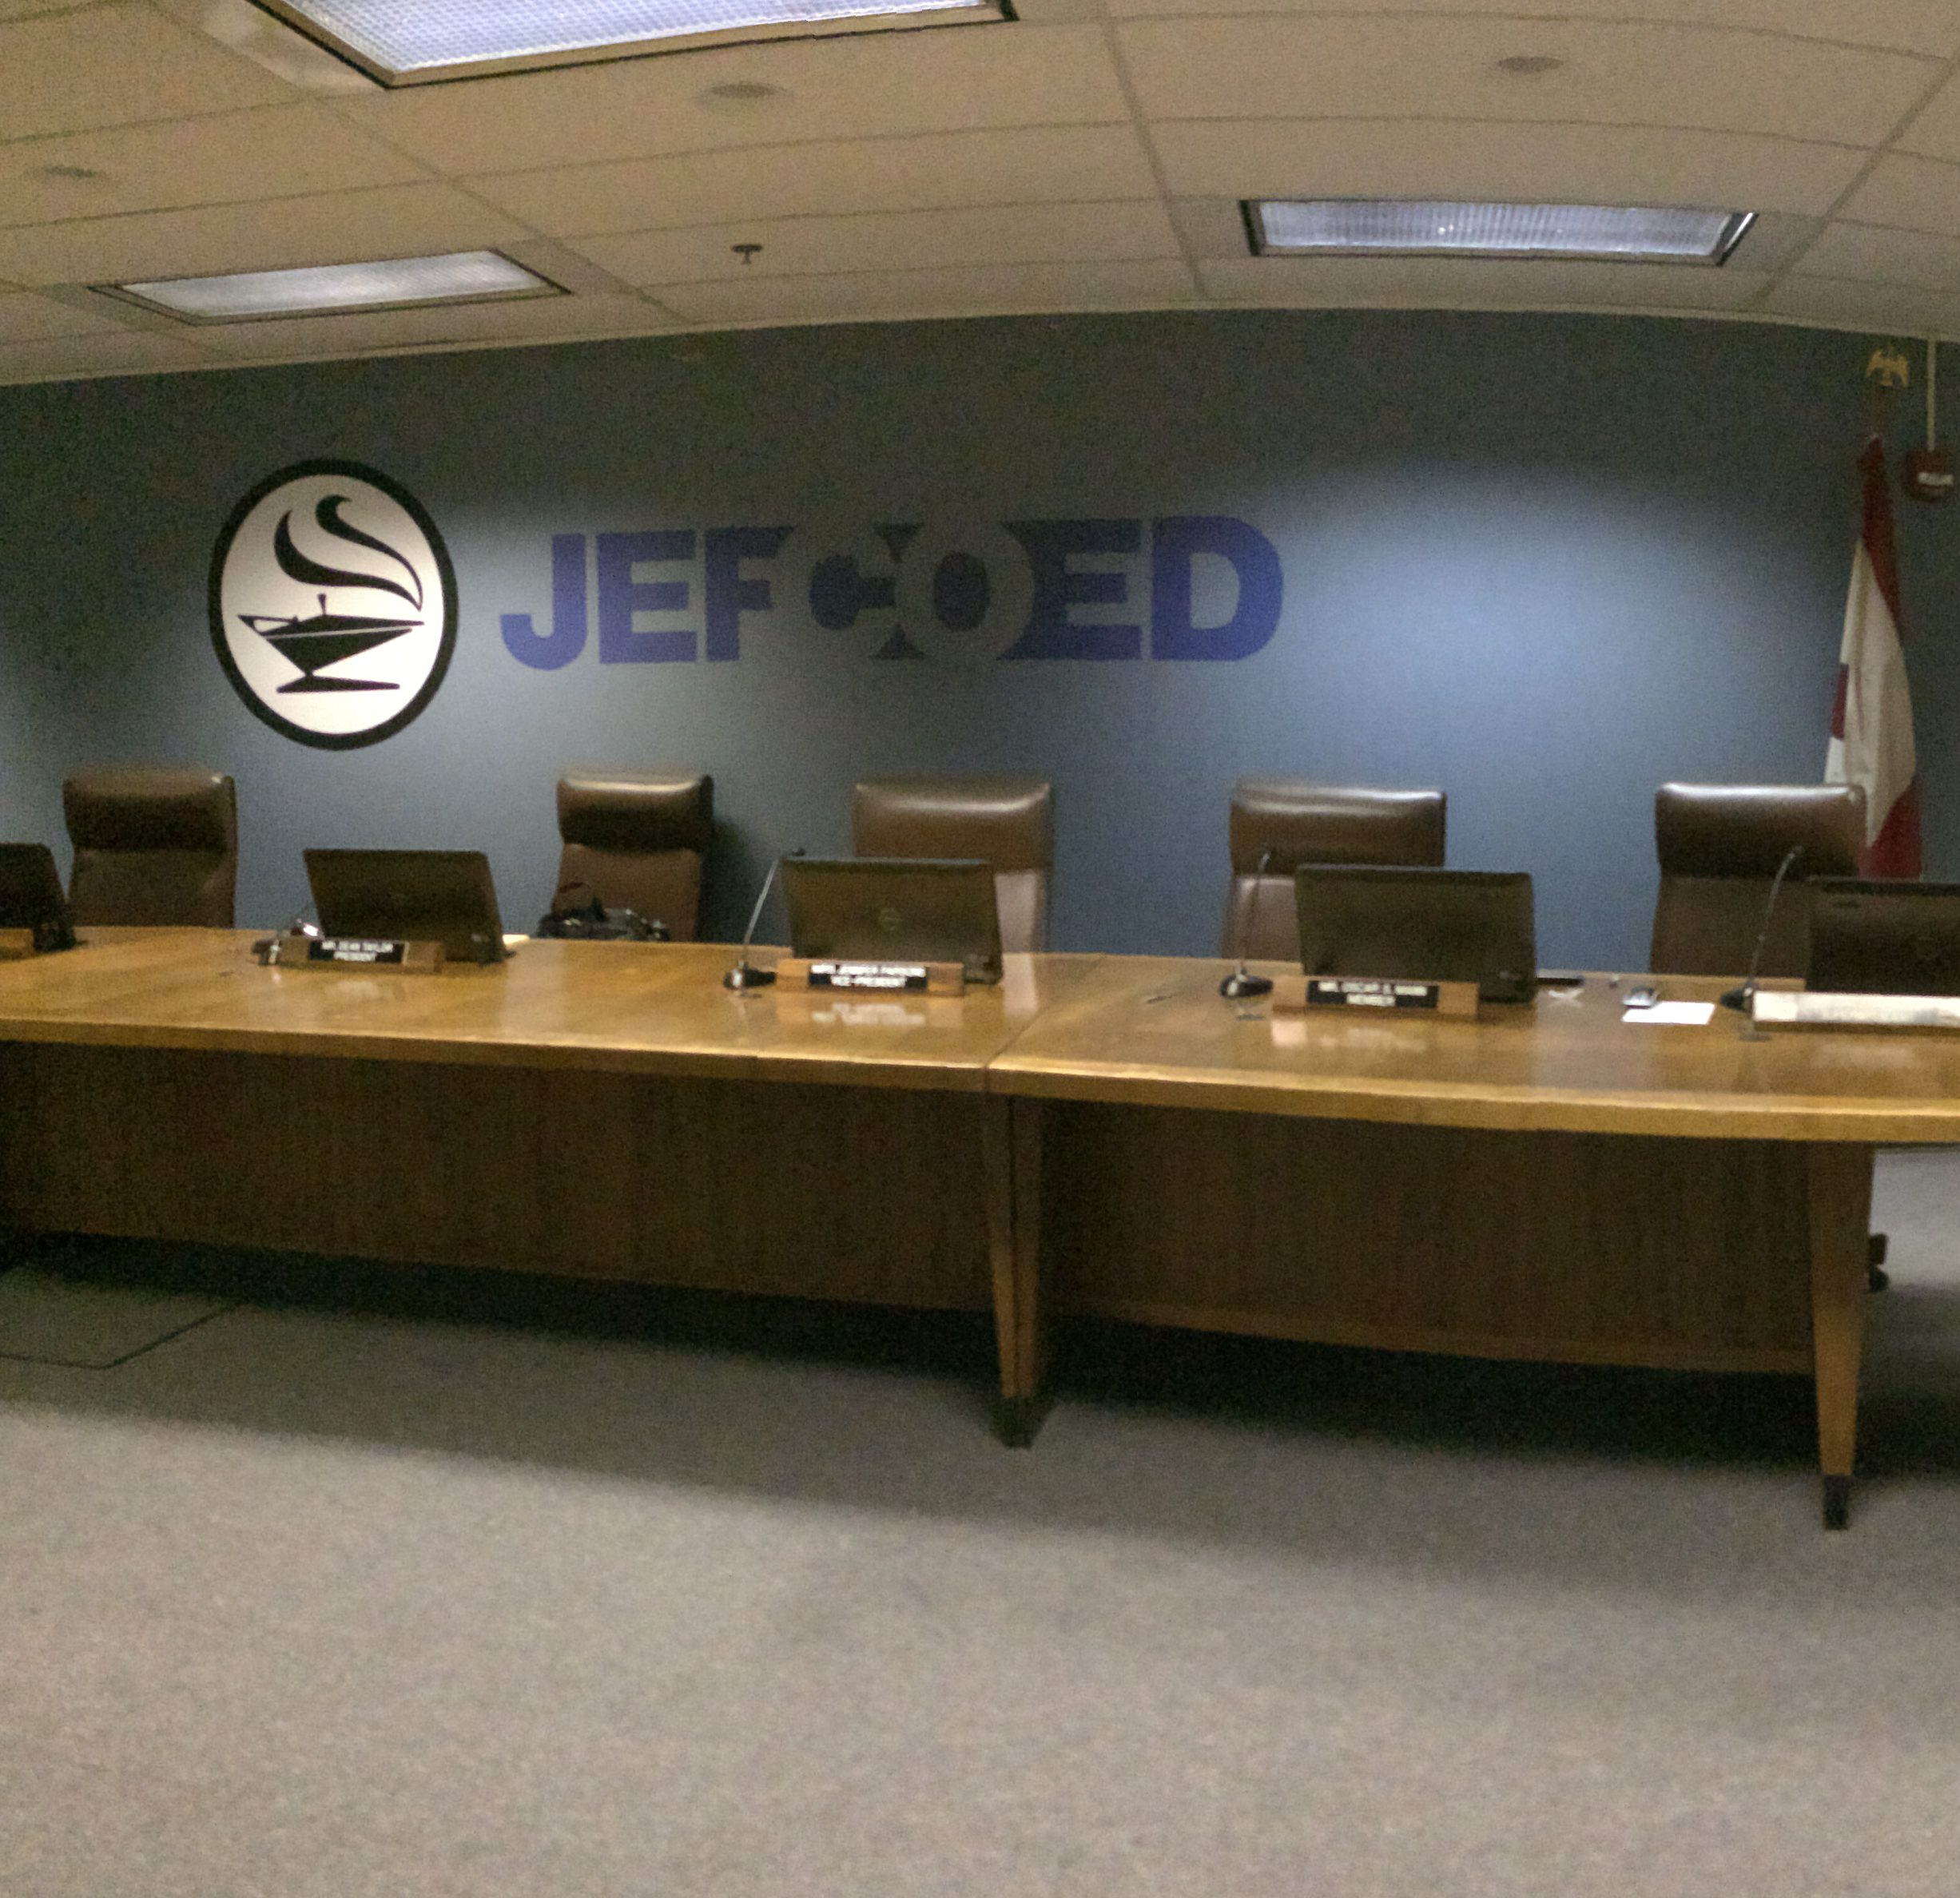 JEFCOED meeting scheduled this week, agenda posted